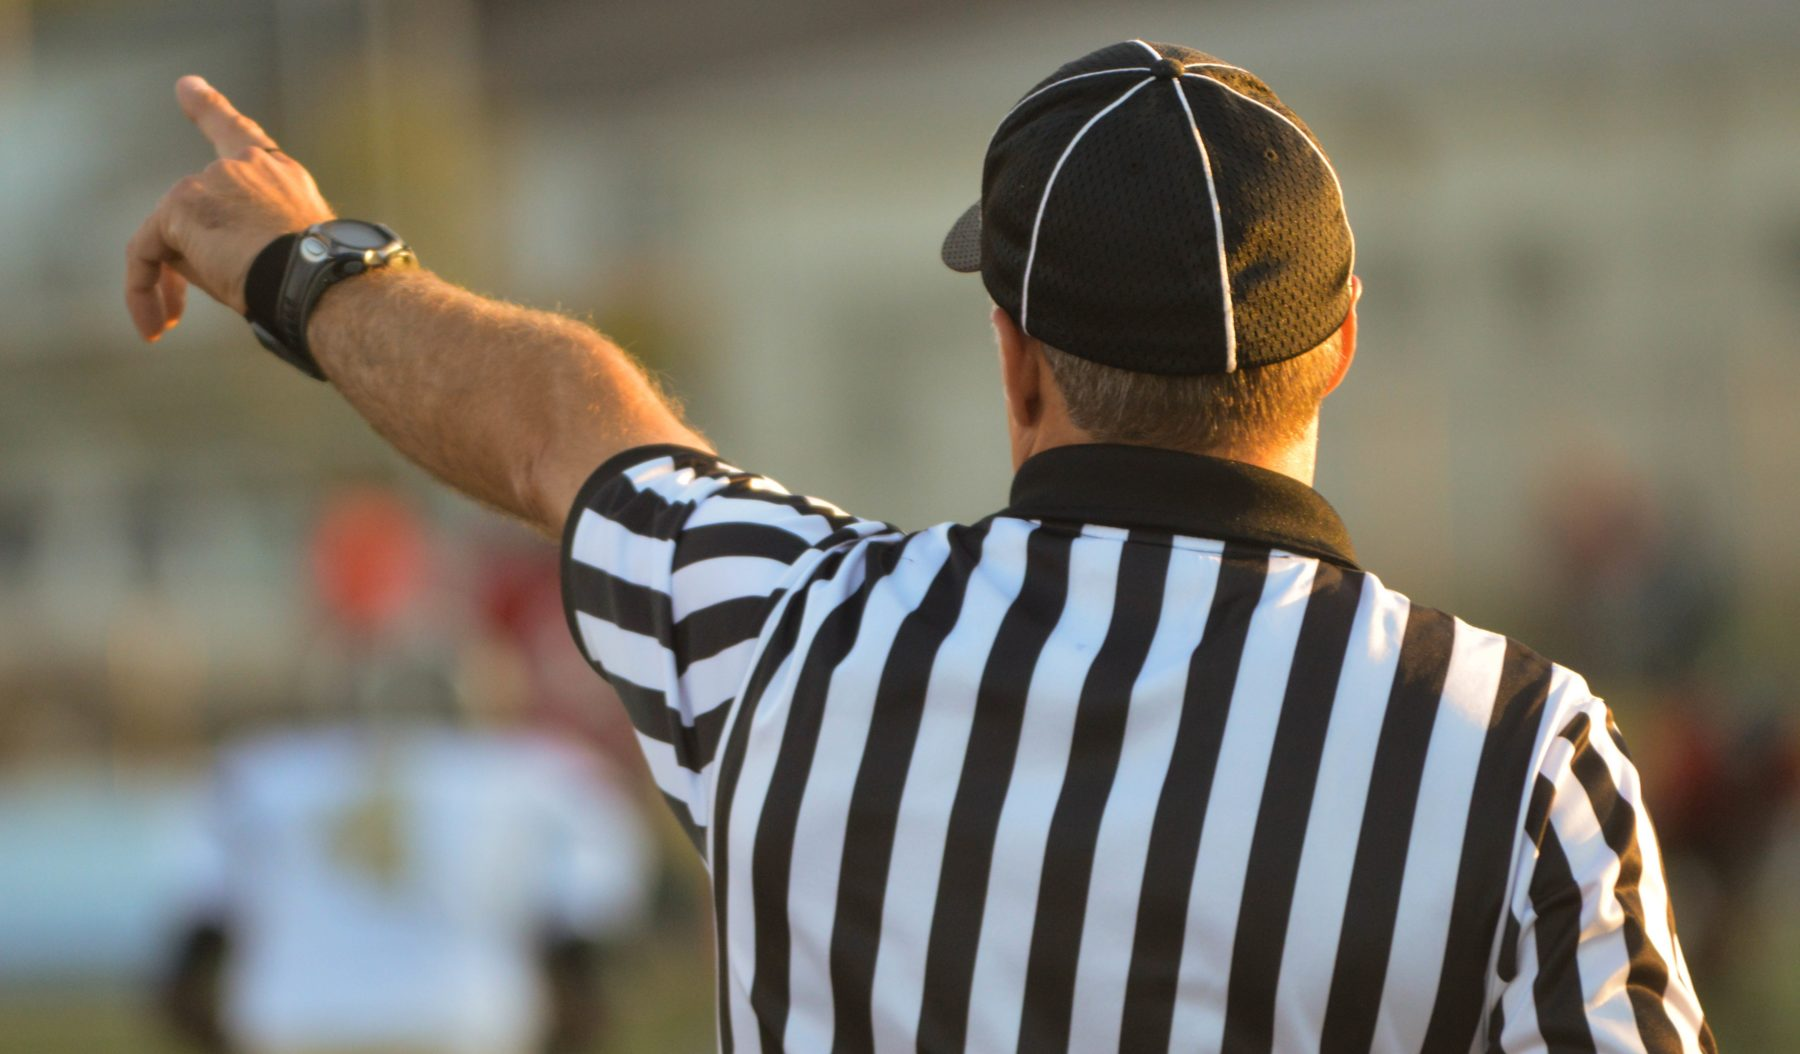 Referee with back to camera pointing.